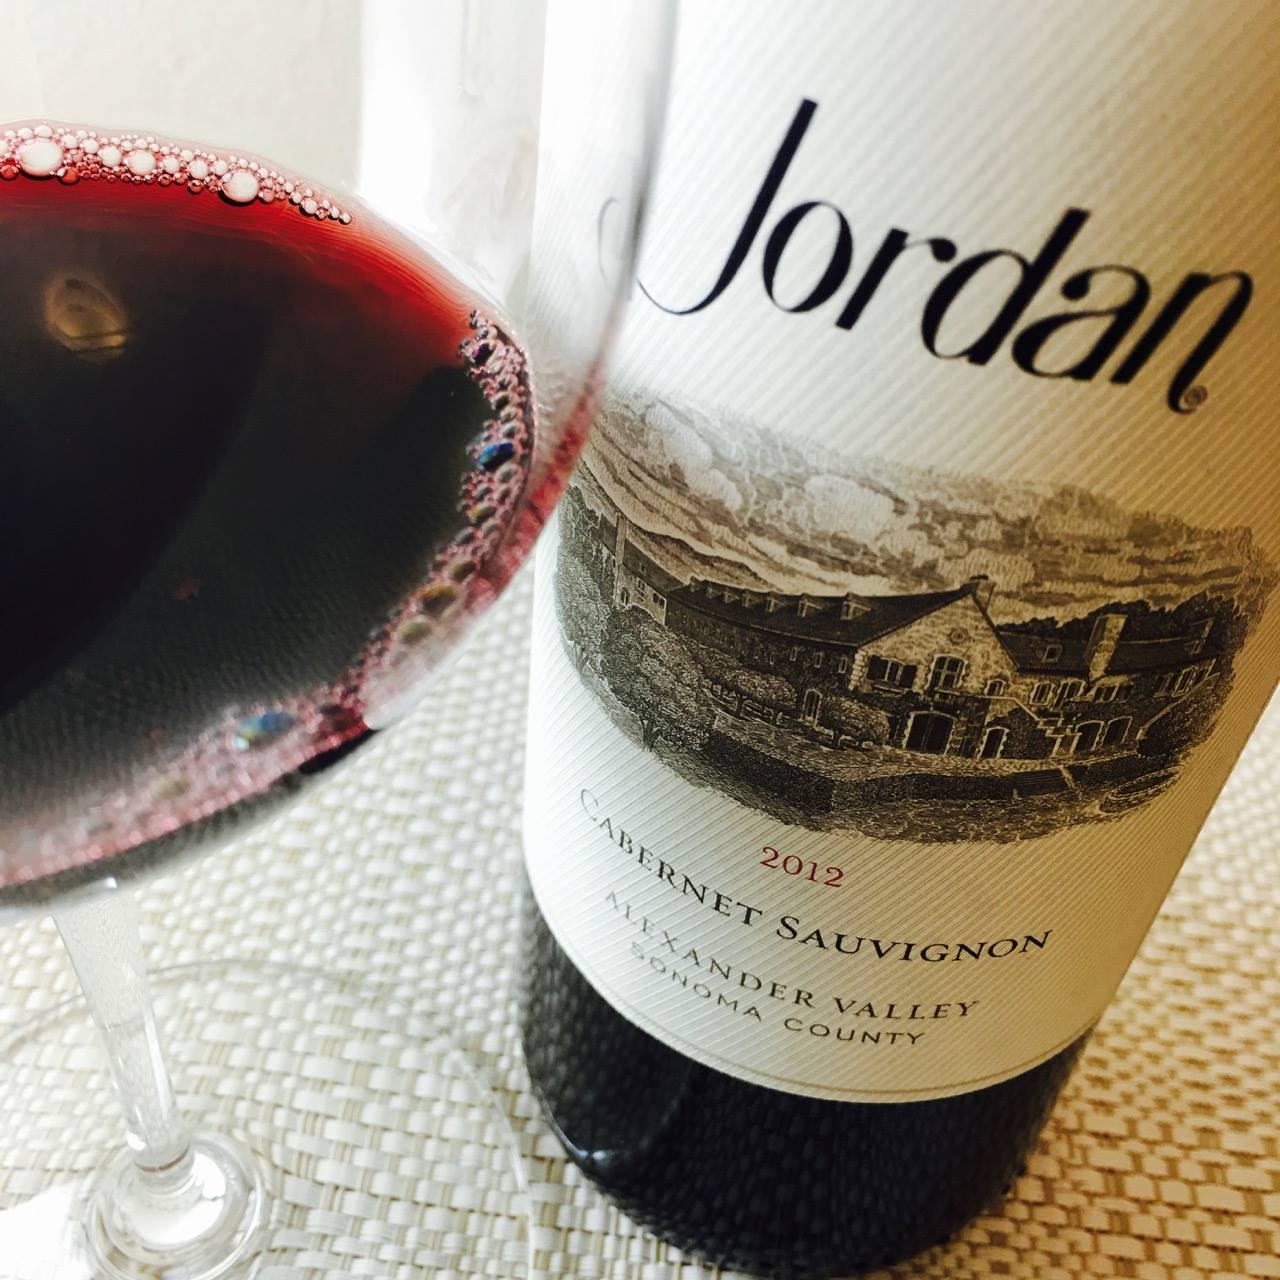 2012 Jordan Vineyard and Winery Cabernet Sauvignon Alexander Valley, Sonoma County